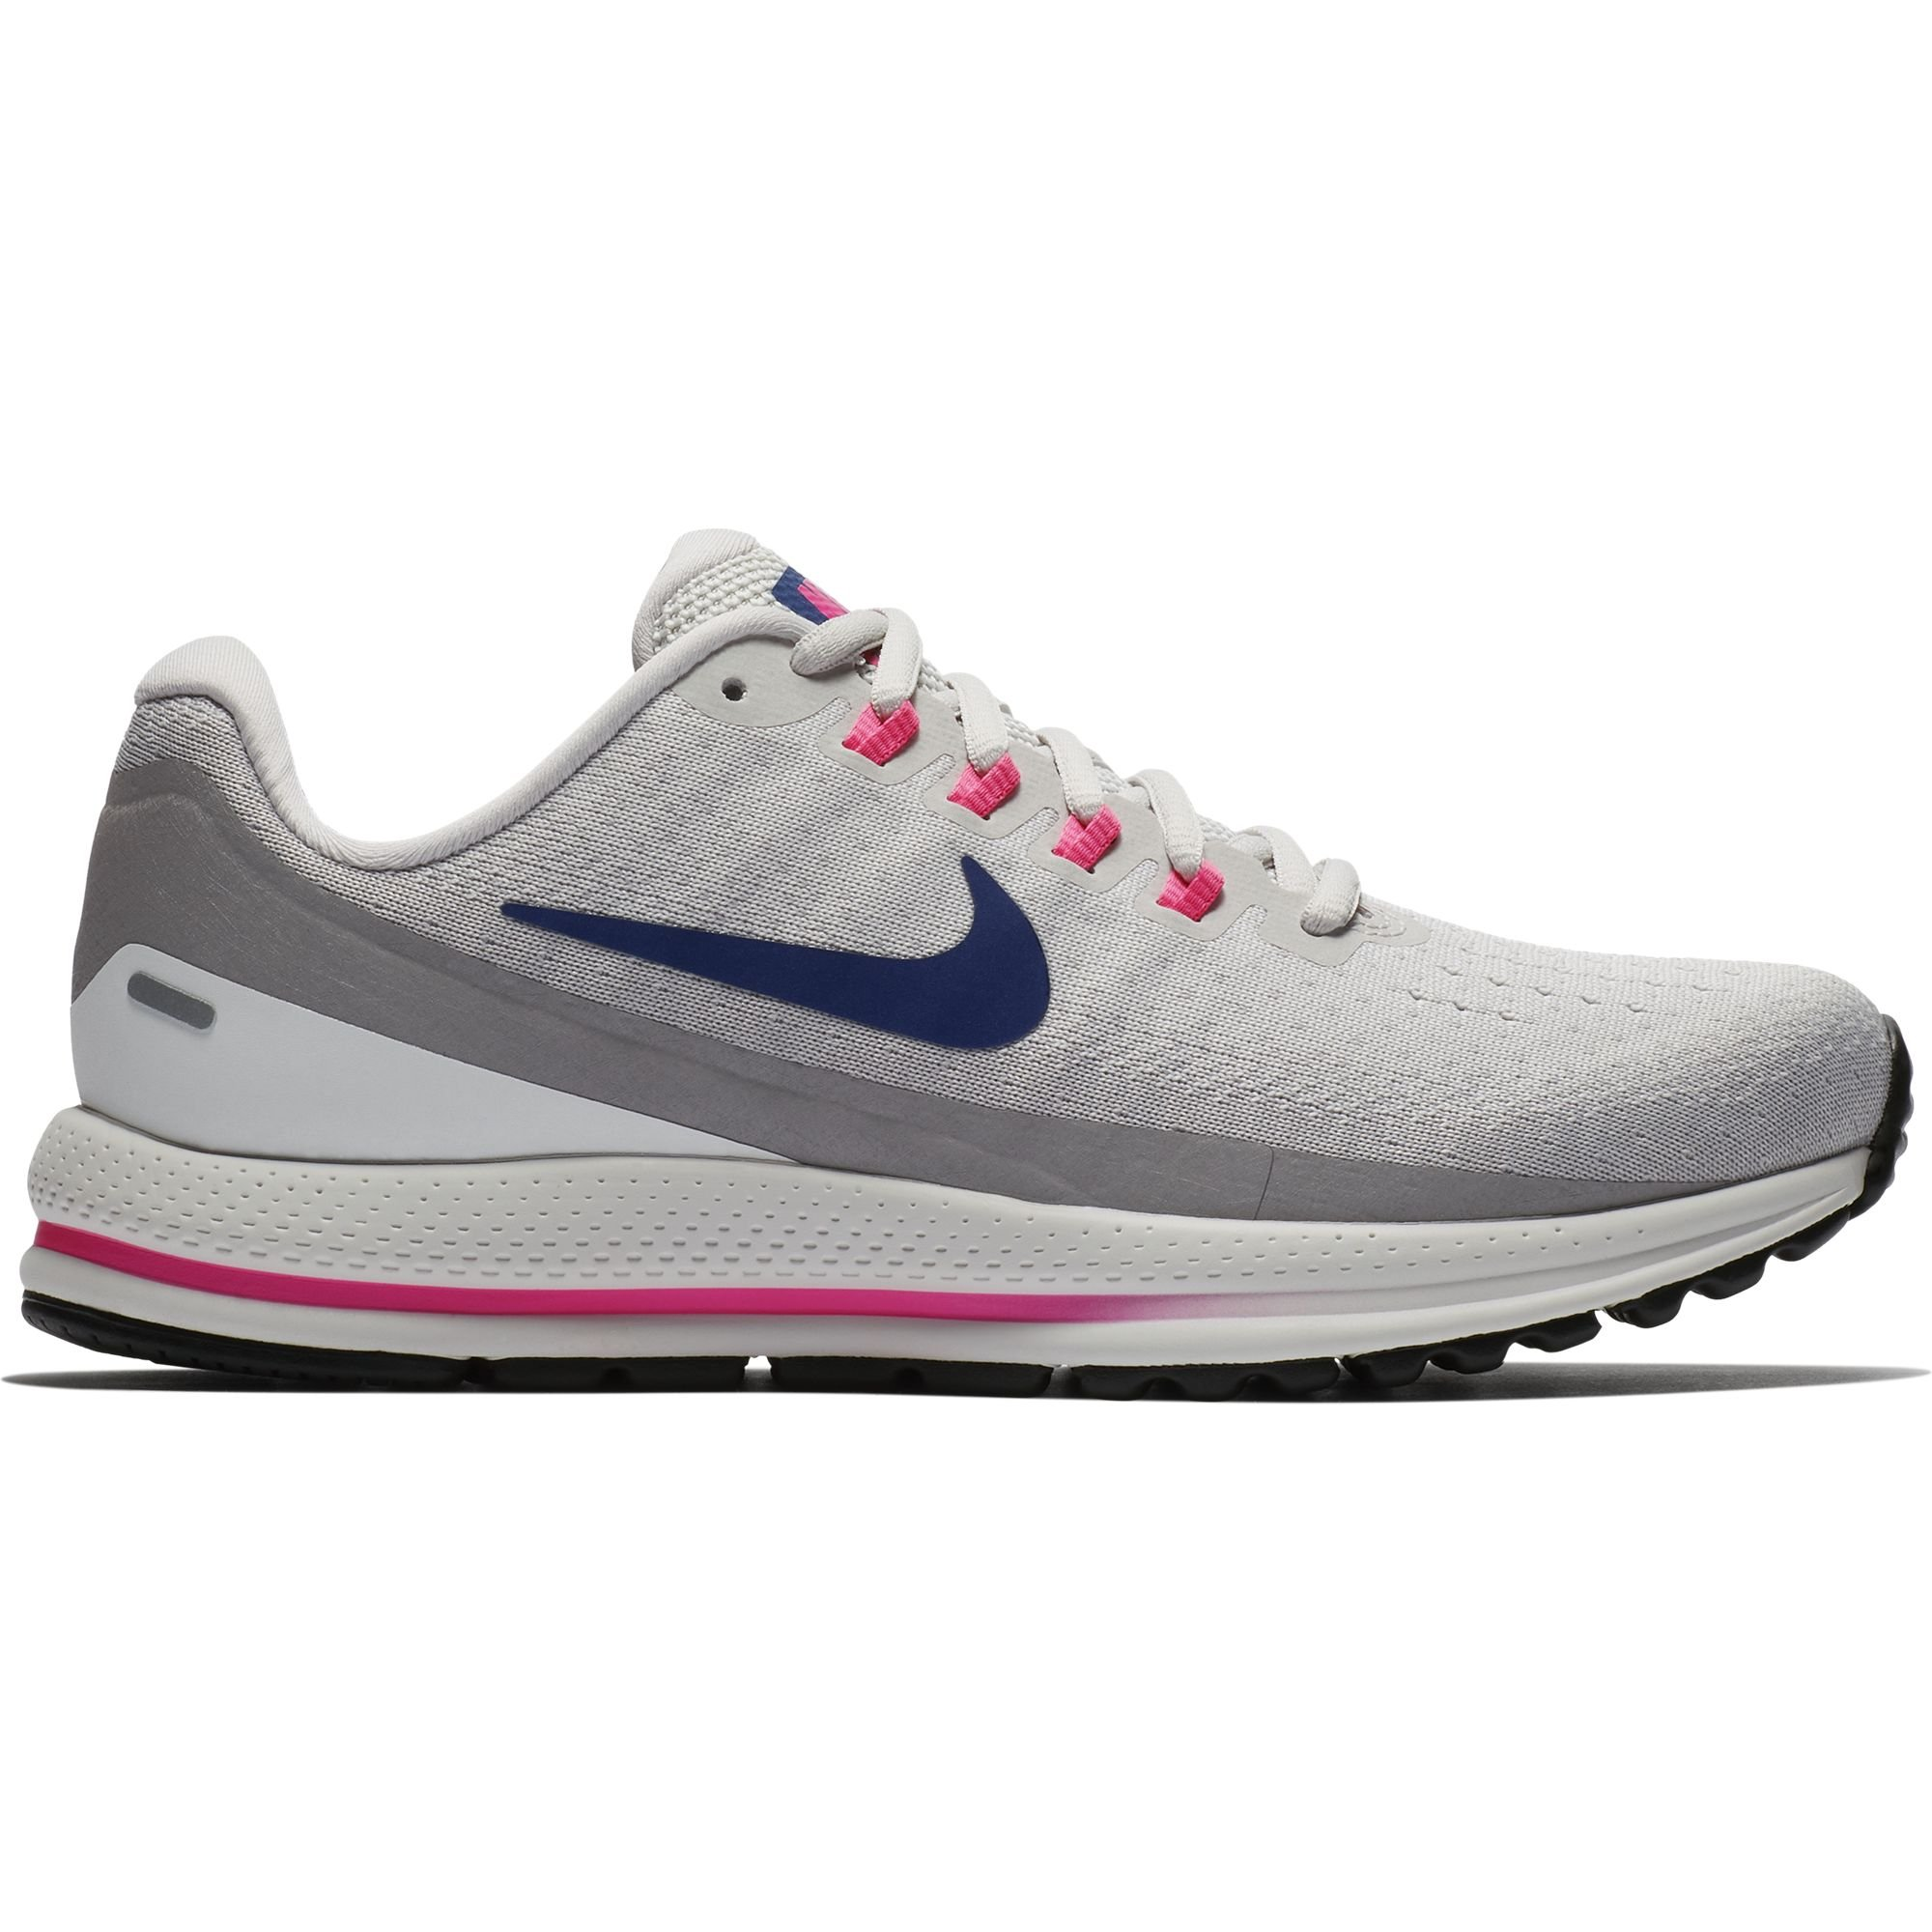 30fe9dffbc9a9 Galleon - NIKE Women s Air Zoom Vomero 13 Running Shoe Vast Grey Deep Royal  Blue Size 9 M US